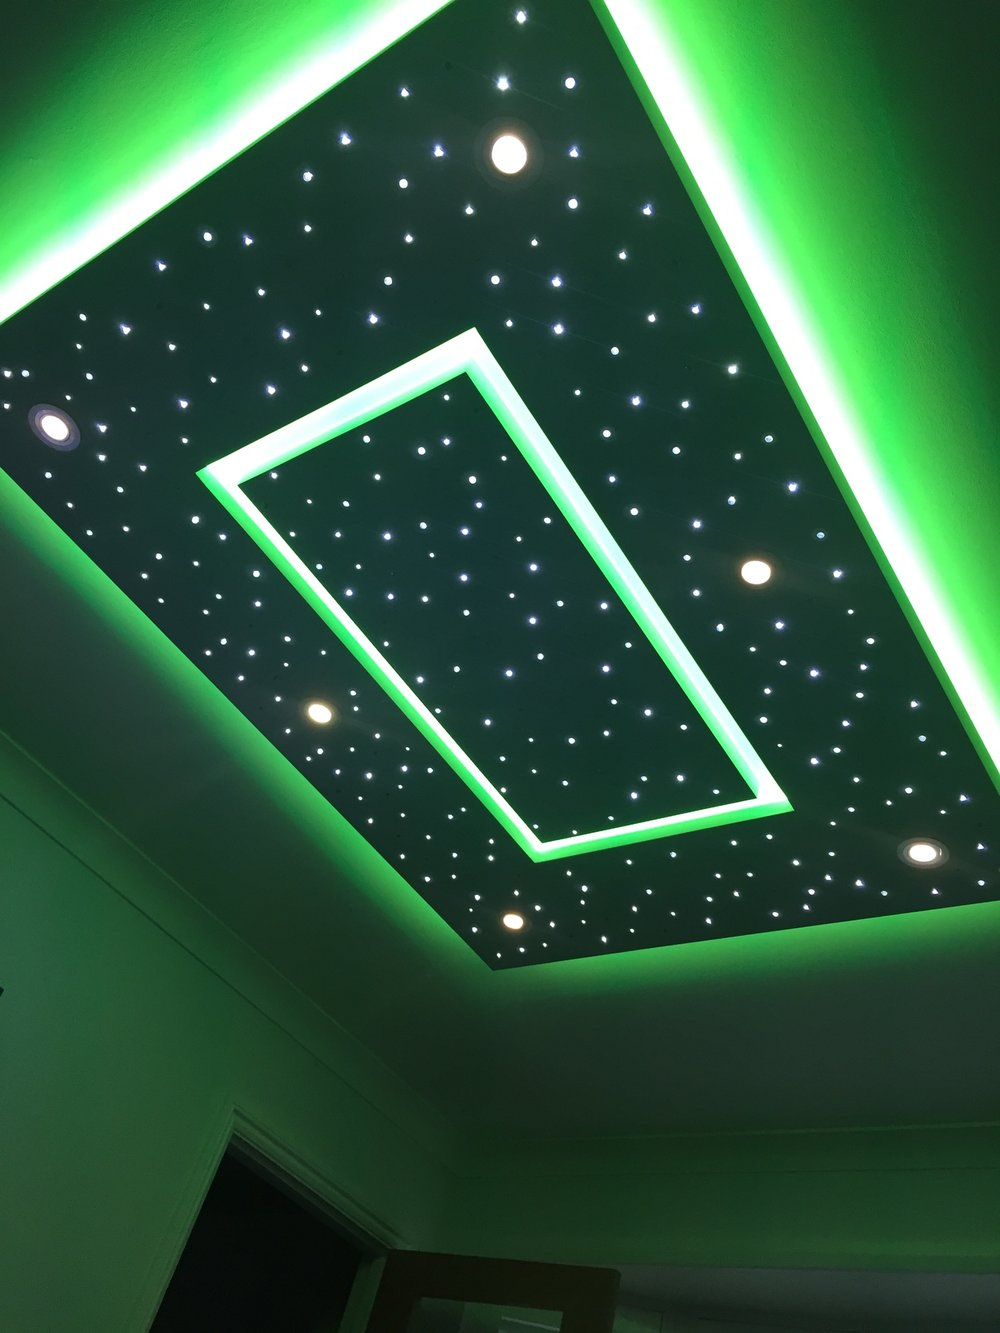 Star ceiling in Living room, edge lighting set to green